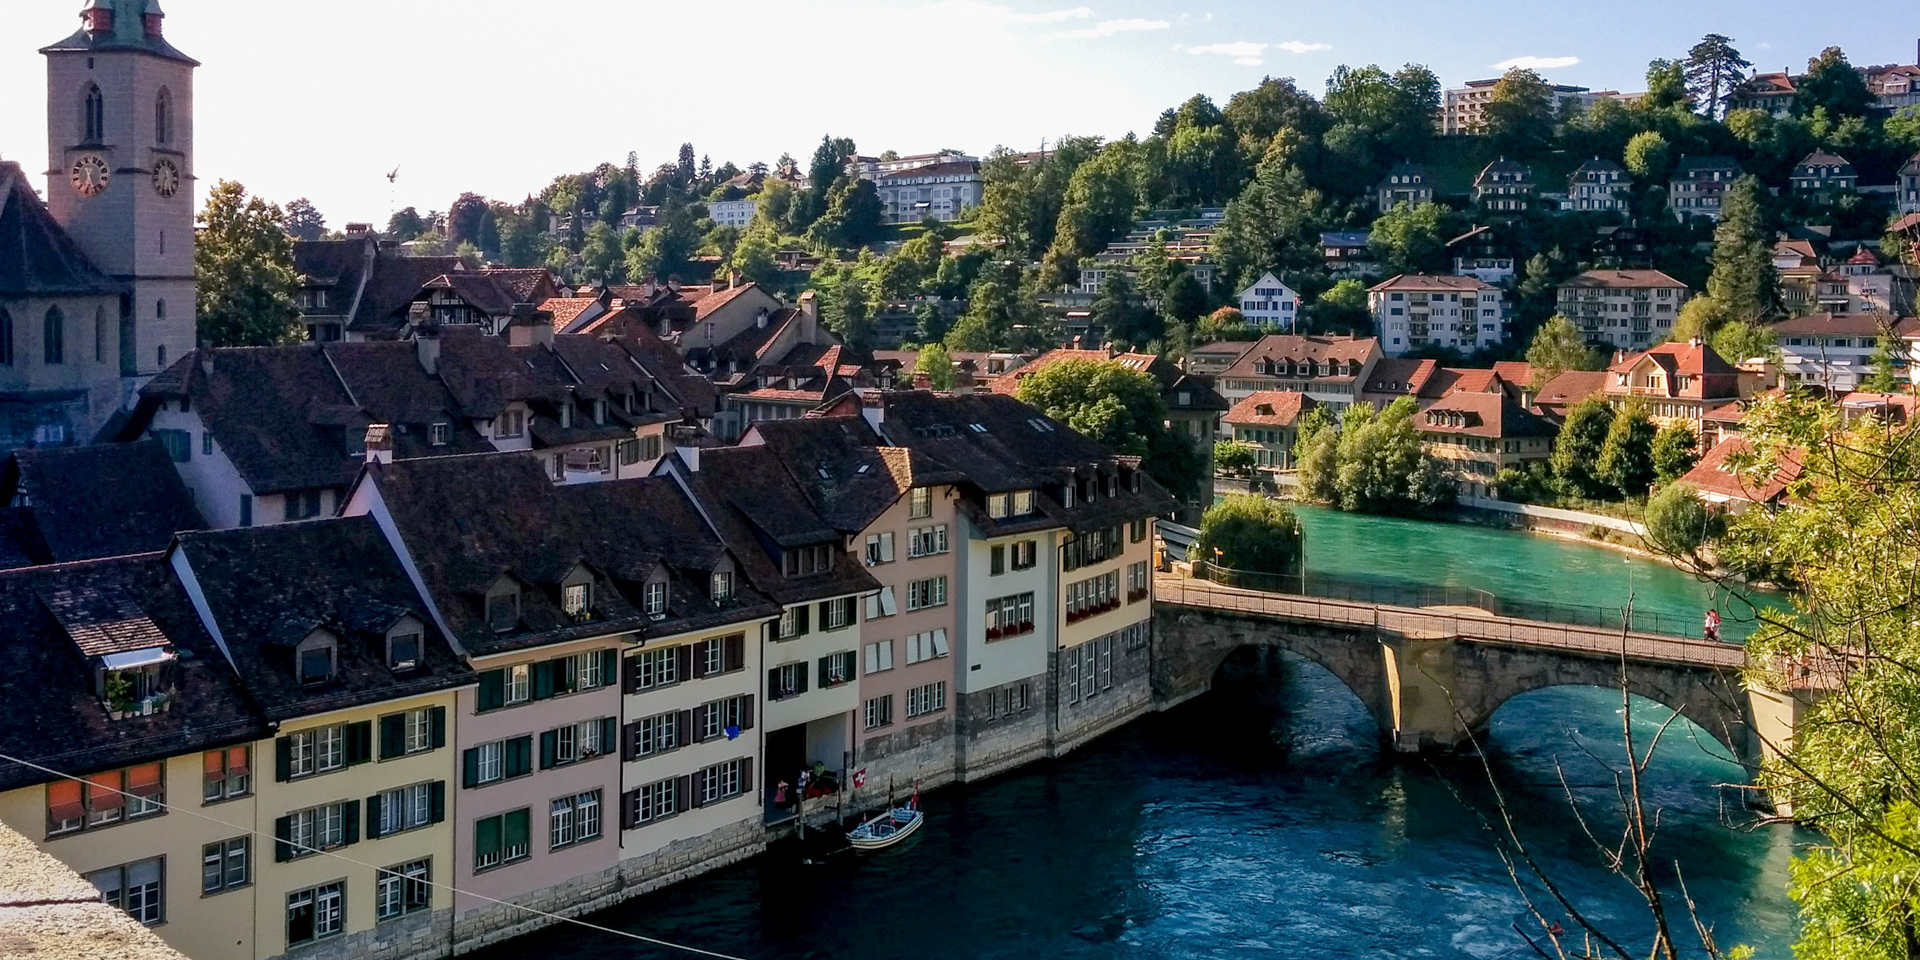 View of the Aare river from the Nydeggbrüke, Bern, Switzerland